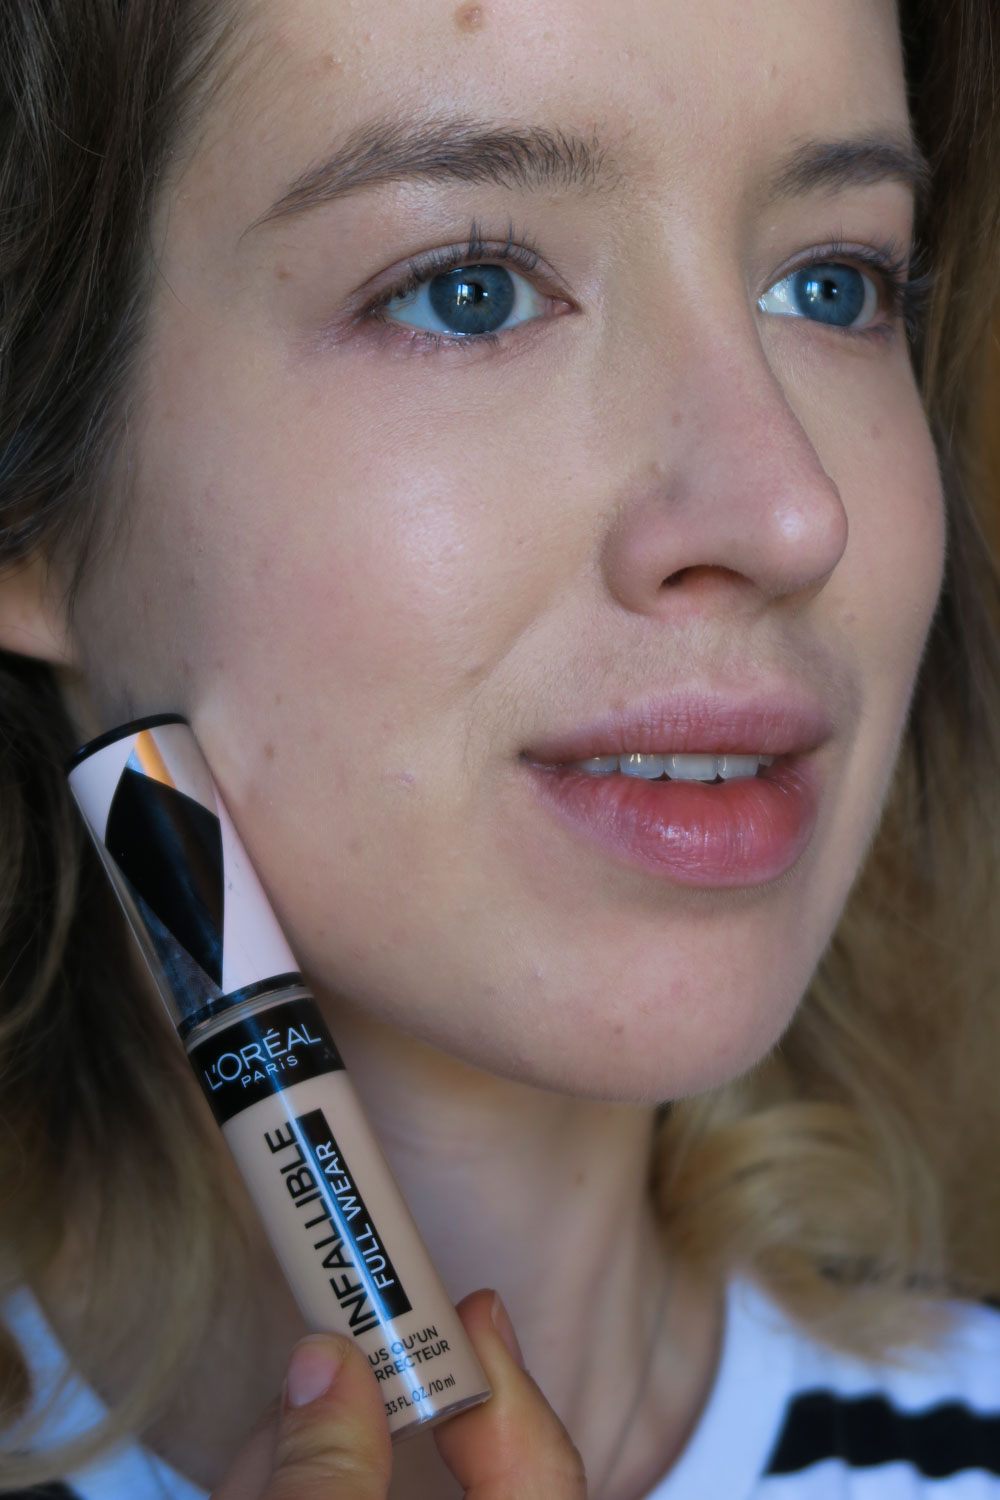 LOREAL Infaillible More Than Concealer